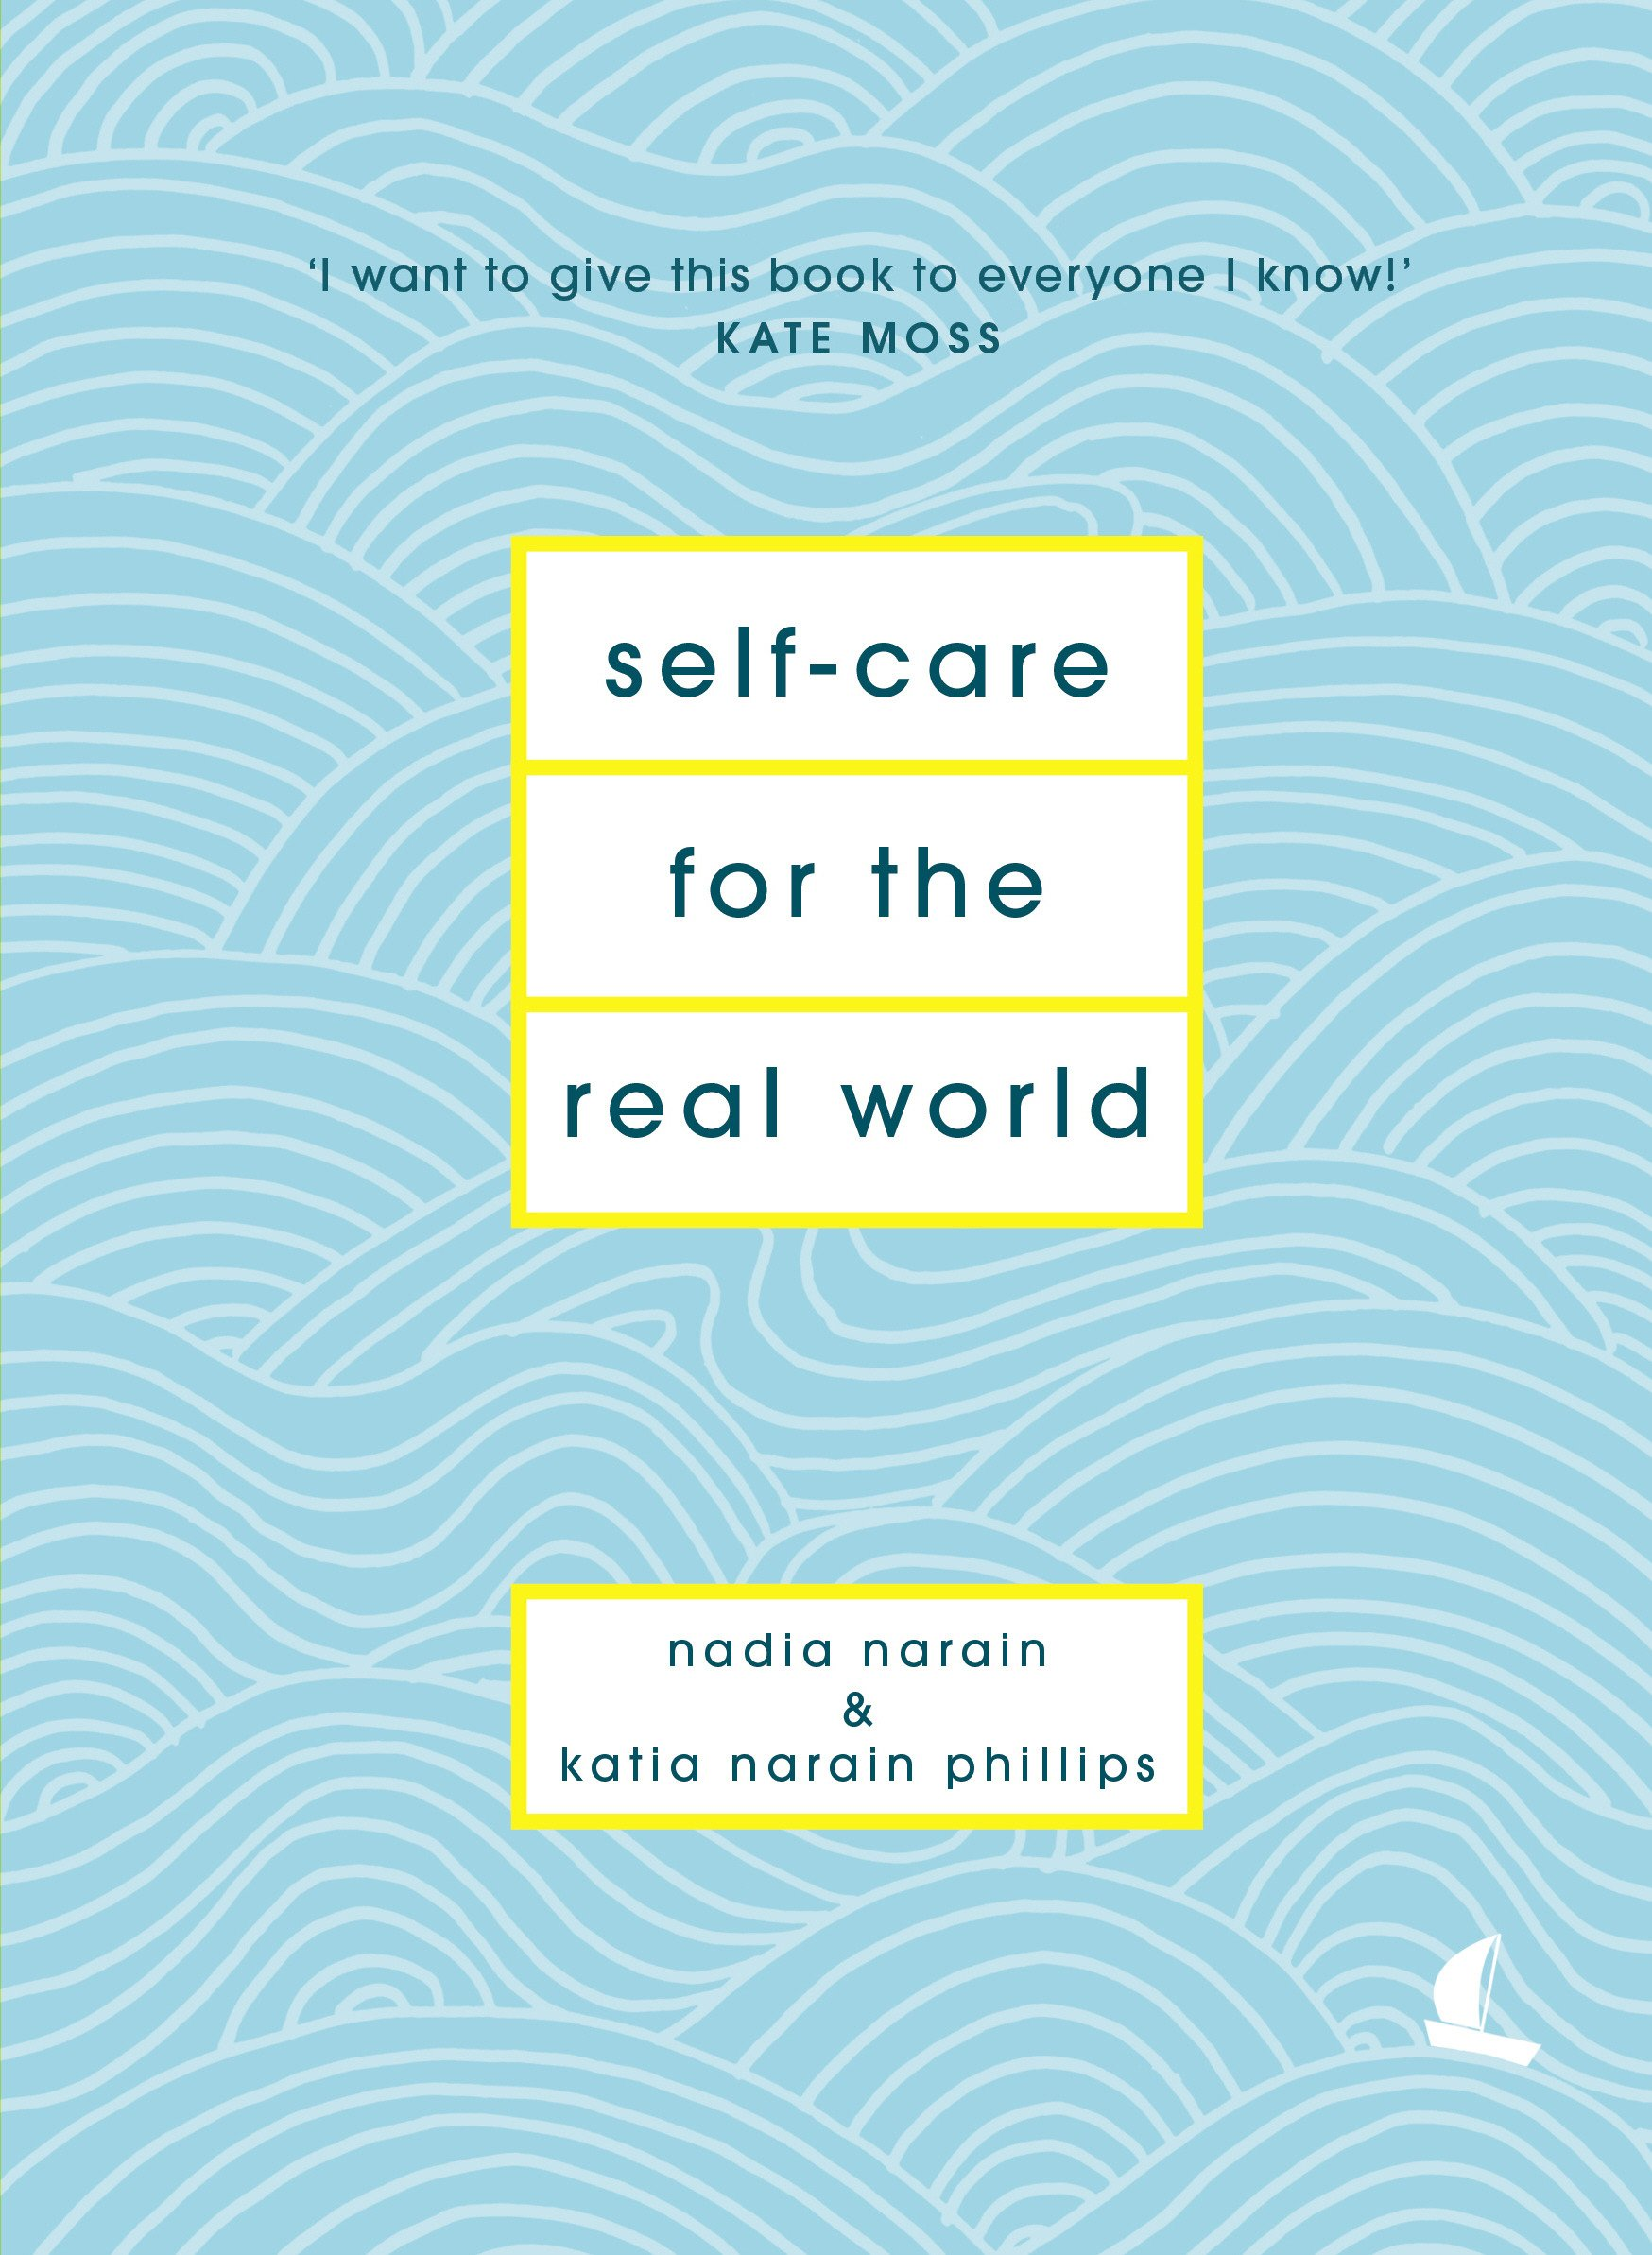 Self care for the real world amazon nadia narain katia self care for the real world amazon nadia narain katia narain phillips 9781786331120 books solutioingenieria Image collections